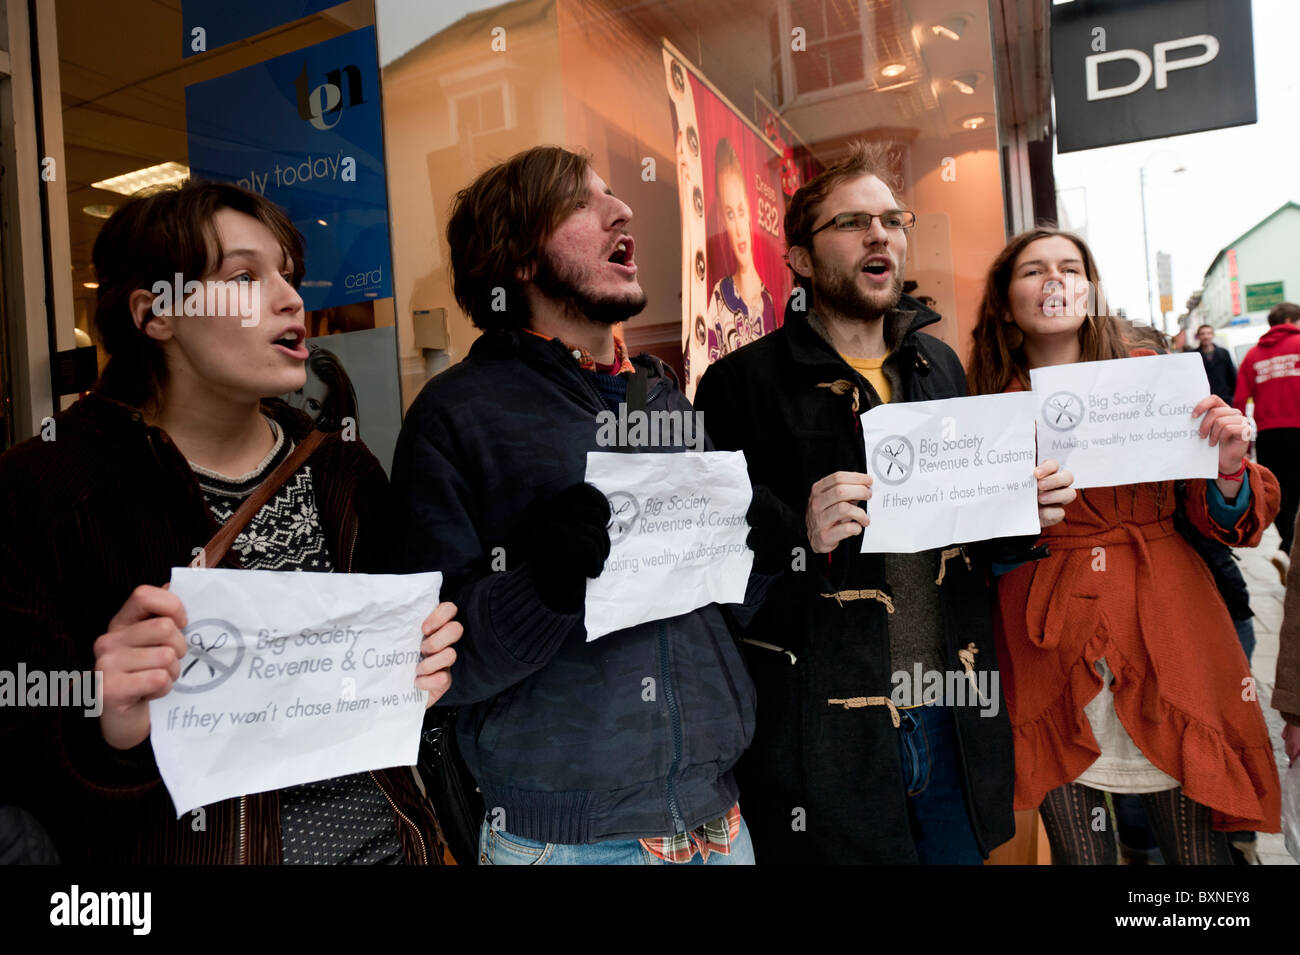 UK Uncut protesters demonstrating at a branch of Dorothy Perkins clothes shop protesting about tax avoidance by - Stock Image